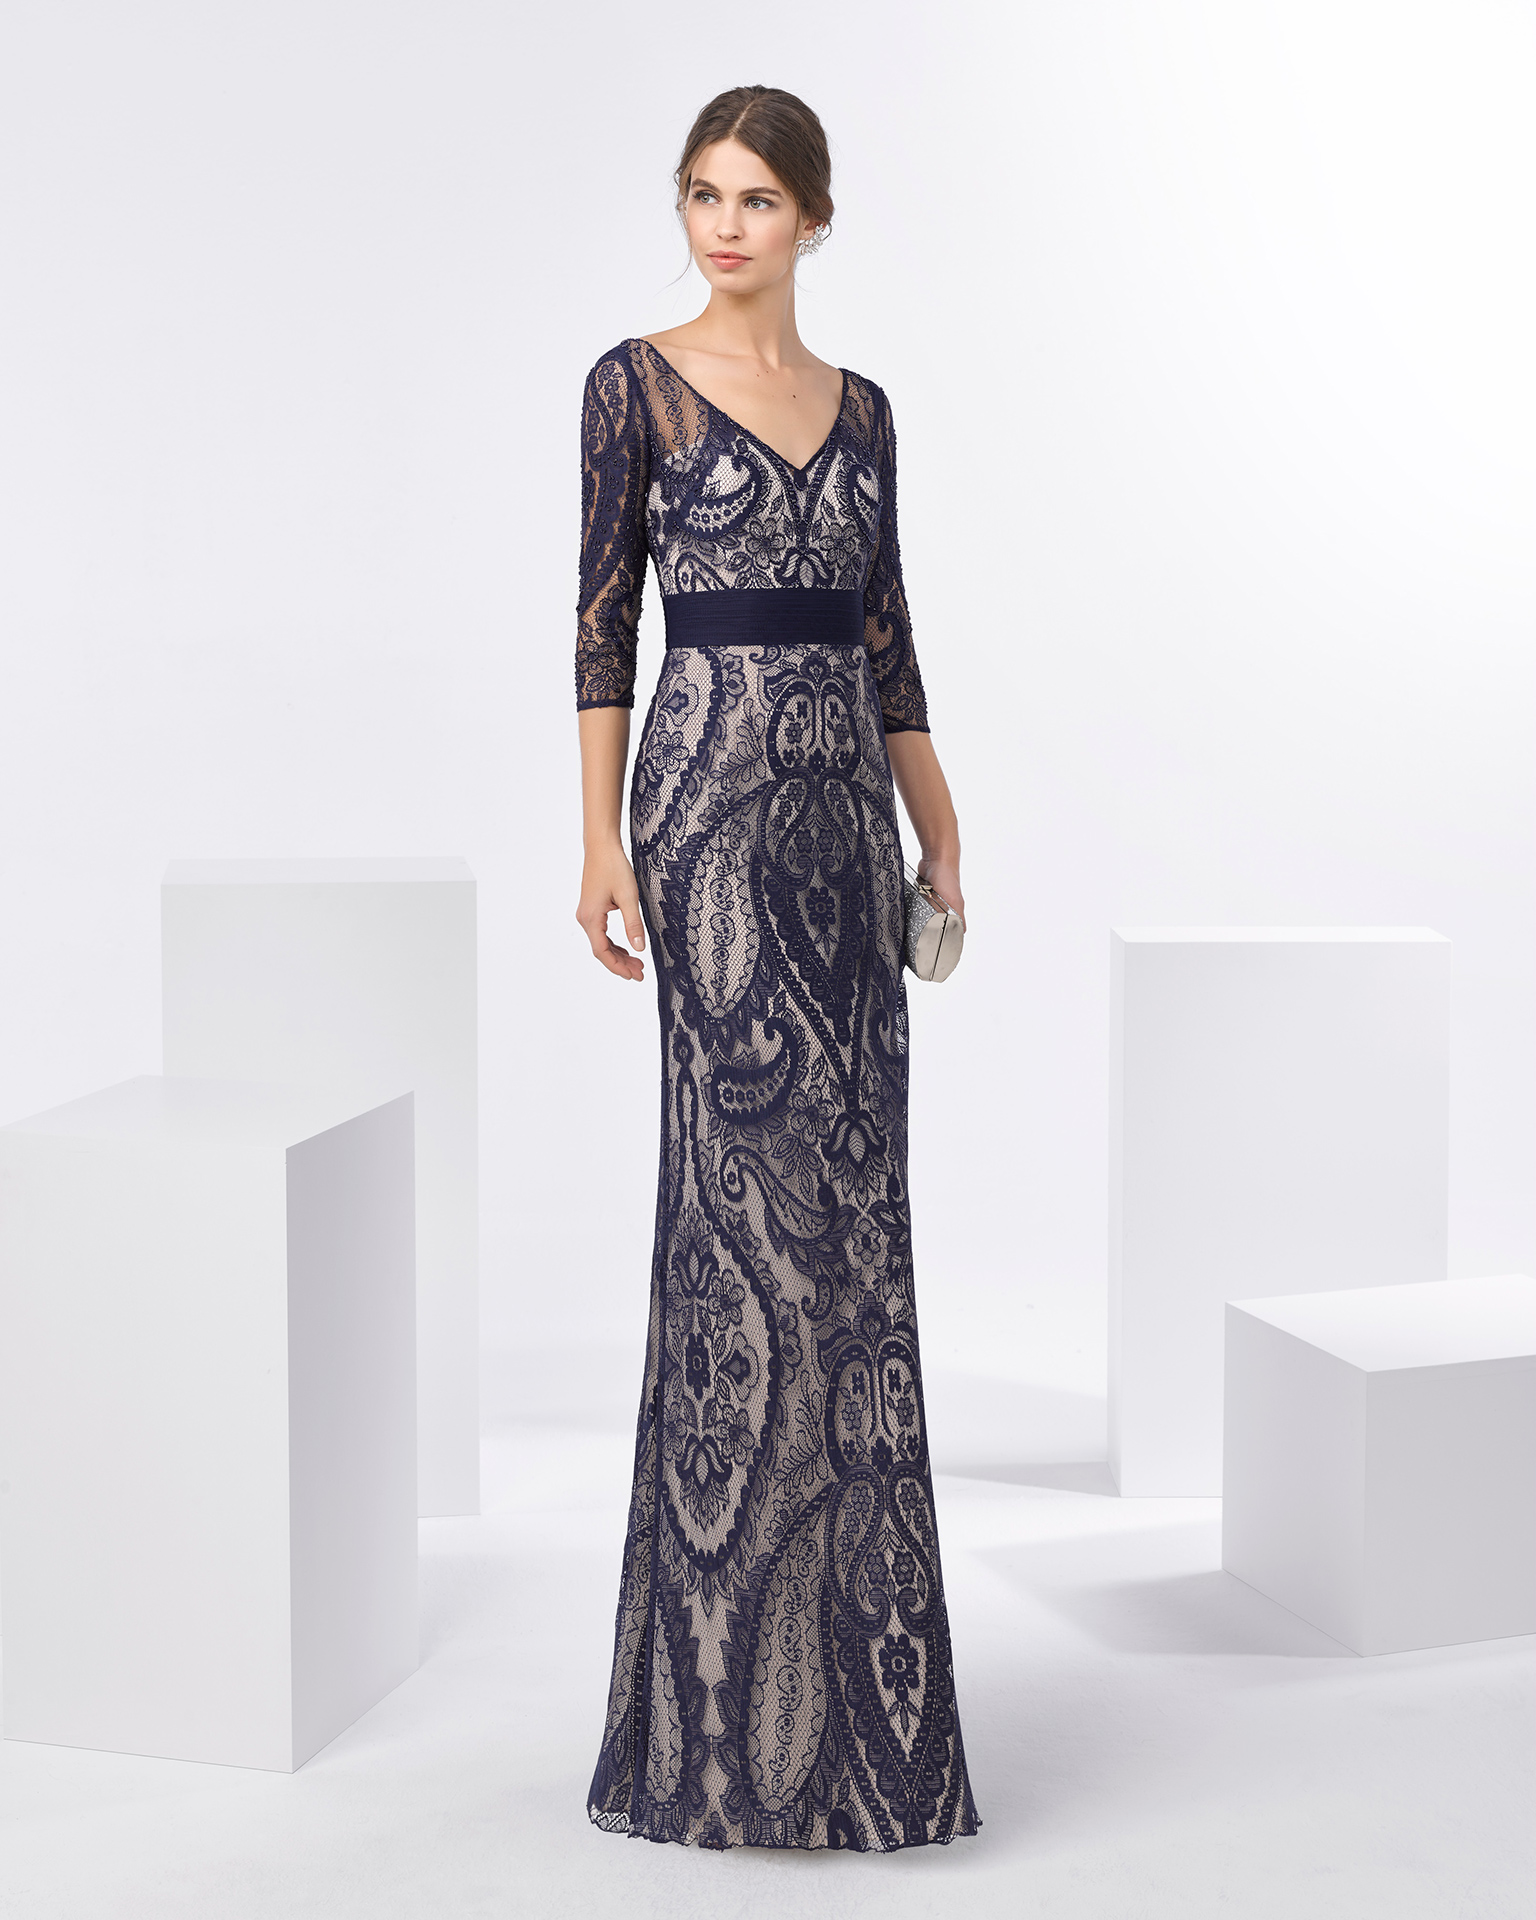 Long beaded lace cocktail dress with V-neckline and three-quarter sleeves. Available in navy blue, black/nude and silver. 2018 FIESTA AIRE BARCELONA Collection.